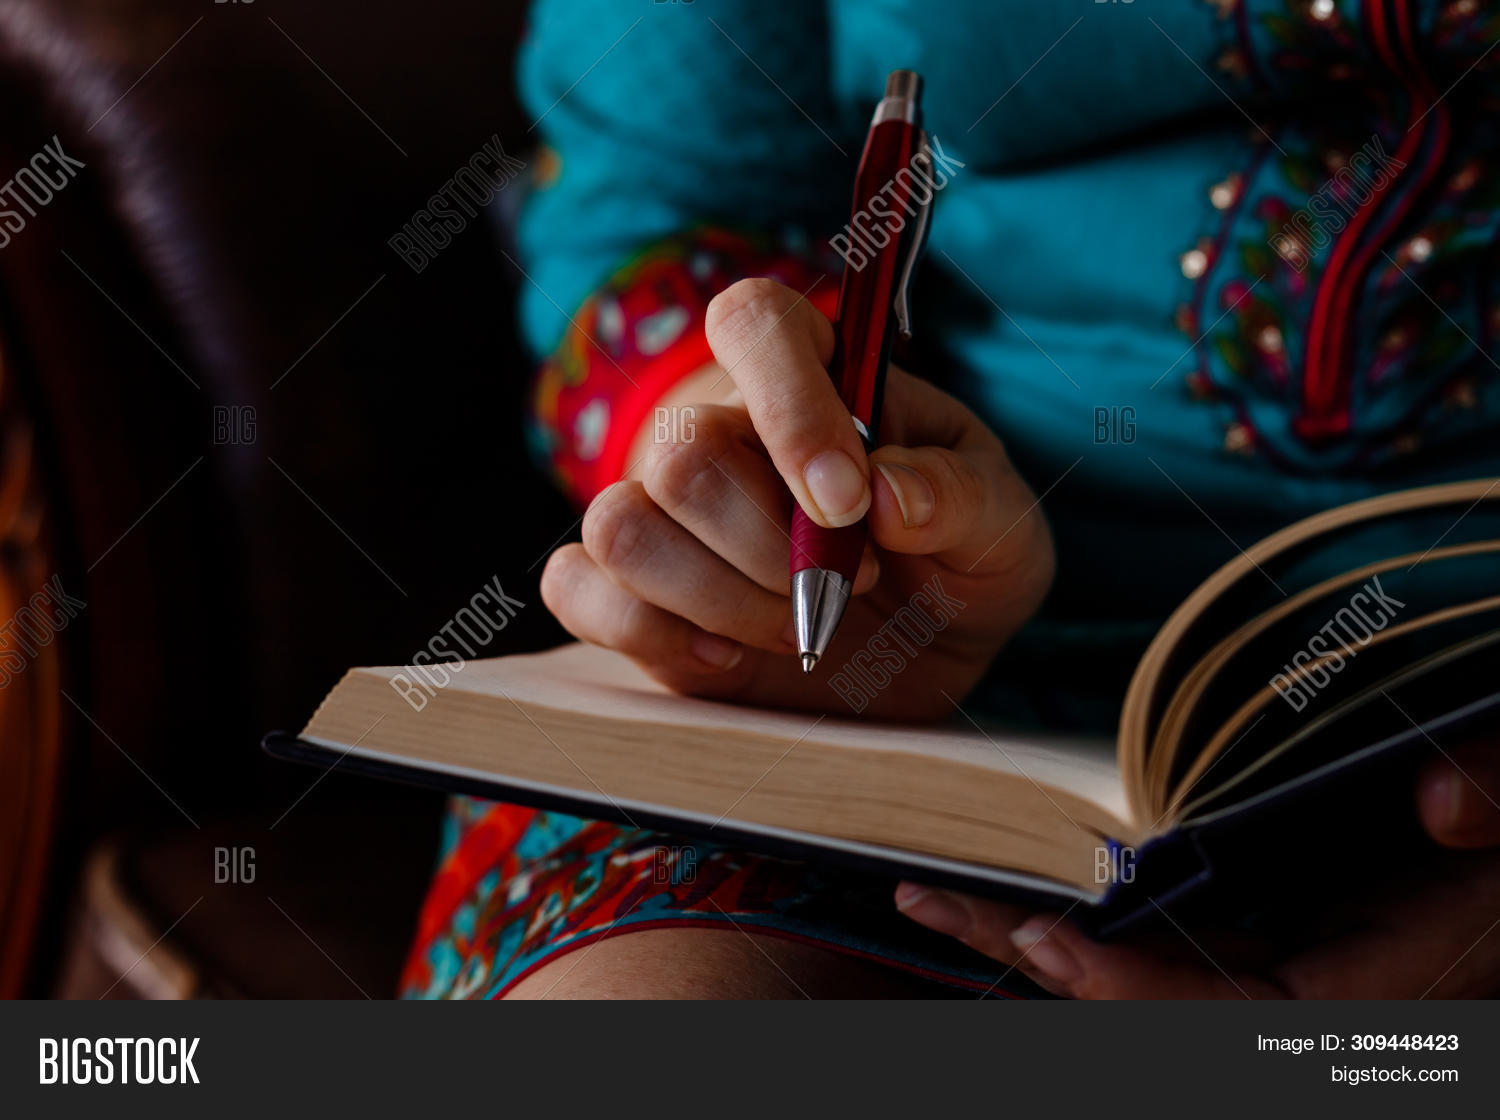 background,blank,book,business,businesswoman,checklist,closeup,concept,desk,diary,document,education,female,girl,hand,handwriting,holding,idea,journal,journalist,lady,laptop,letter,list,message,note,notebook,notepad,office,page,paper,paperwork,pen,people,person,professional,school,student,studying,top,white,woman,wooden,work,working,workplace,write,writer,writing,young